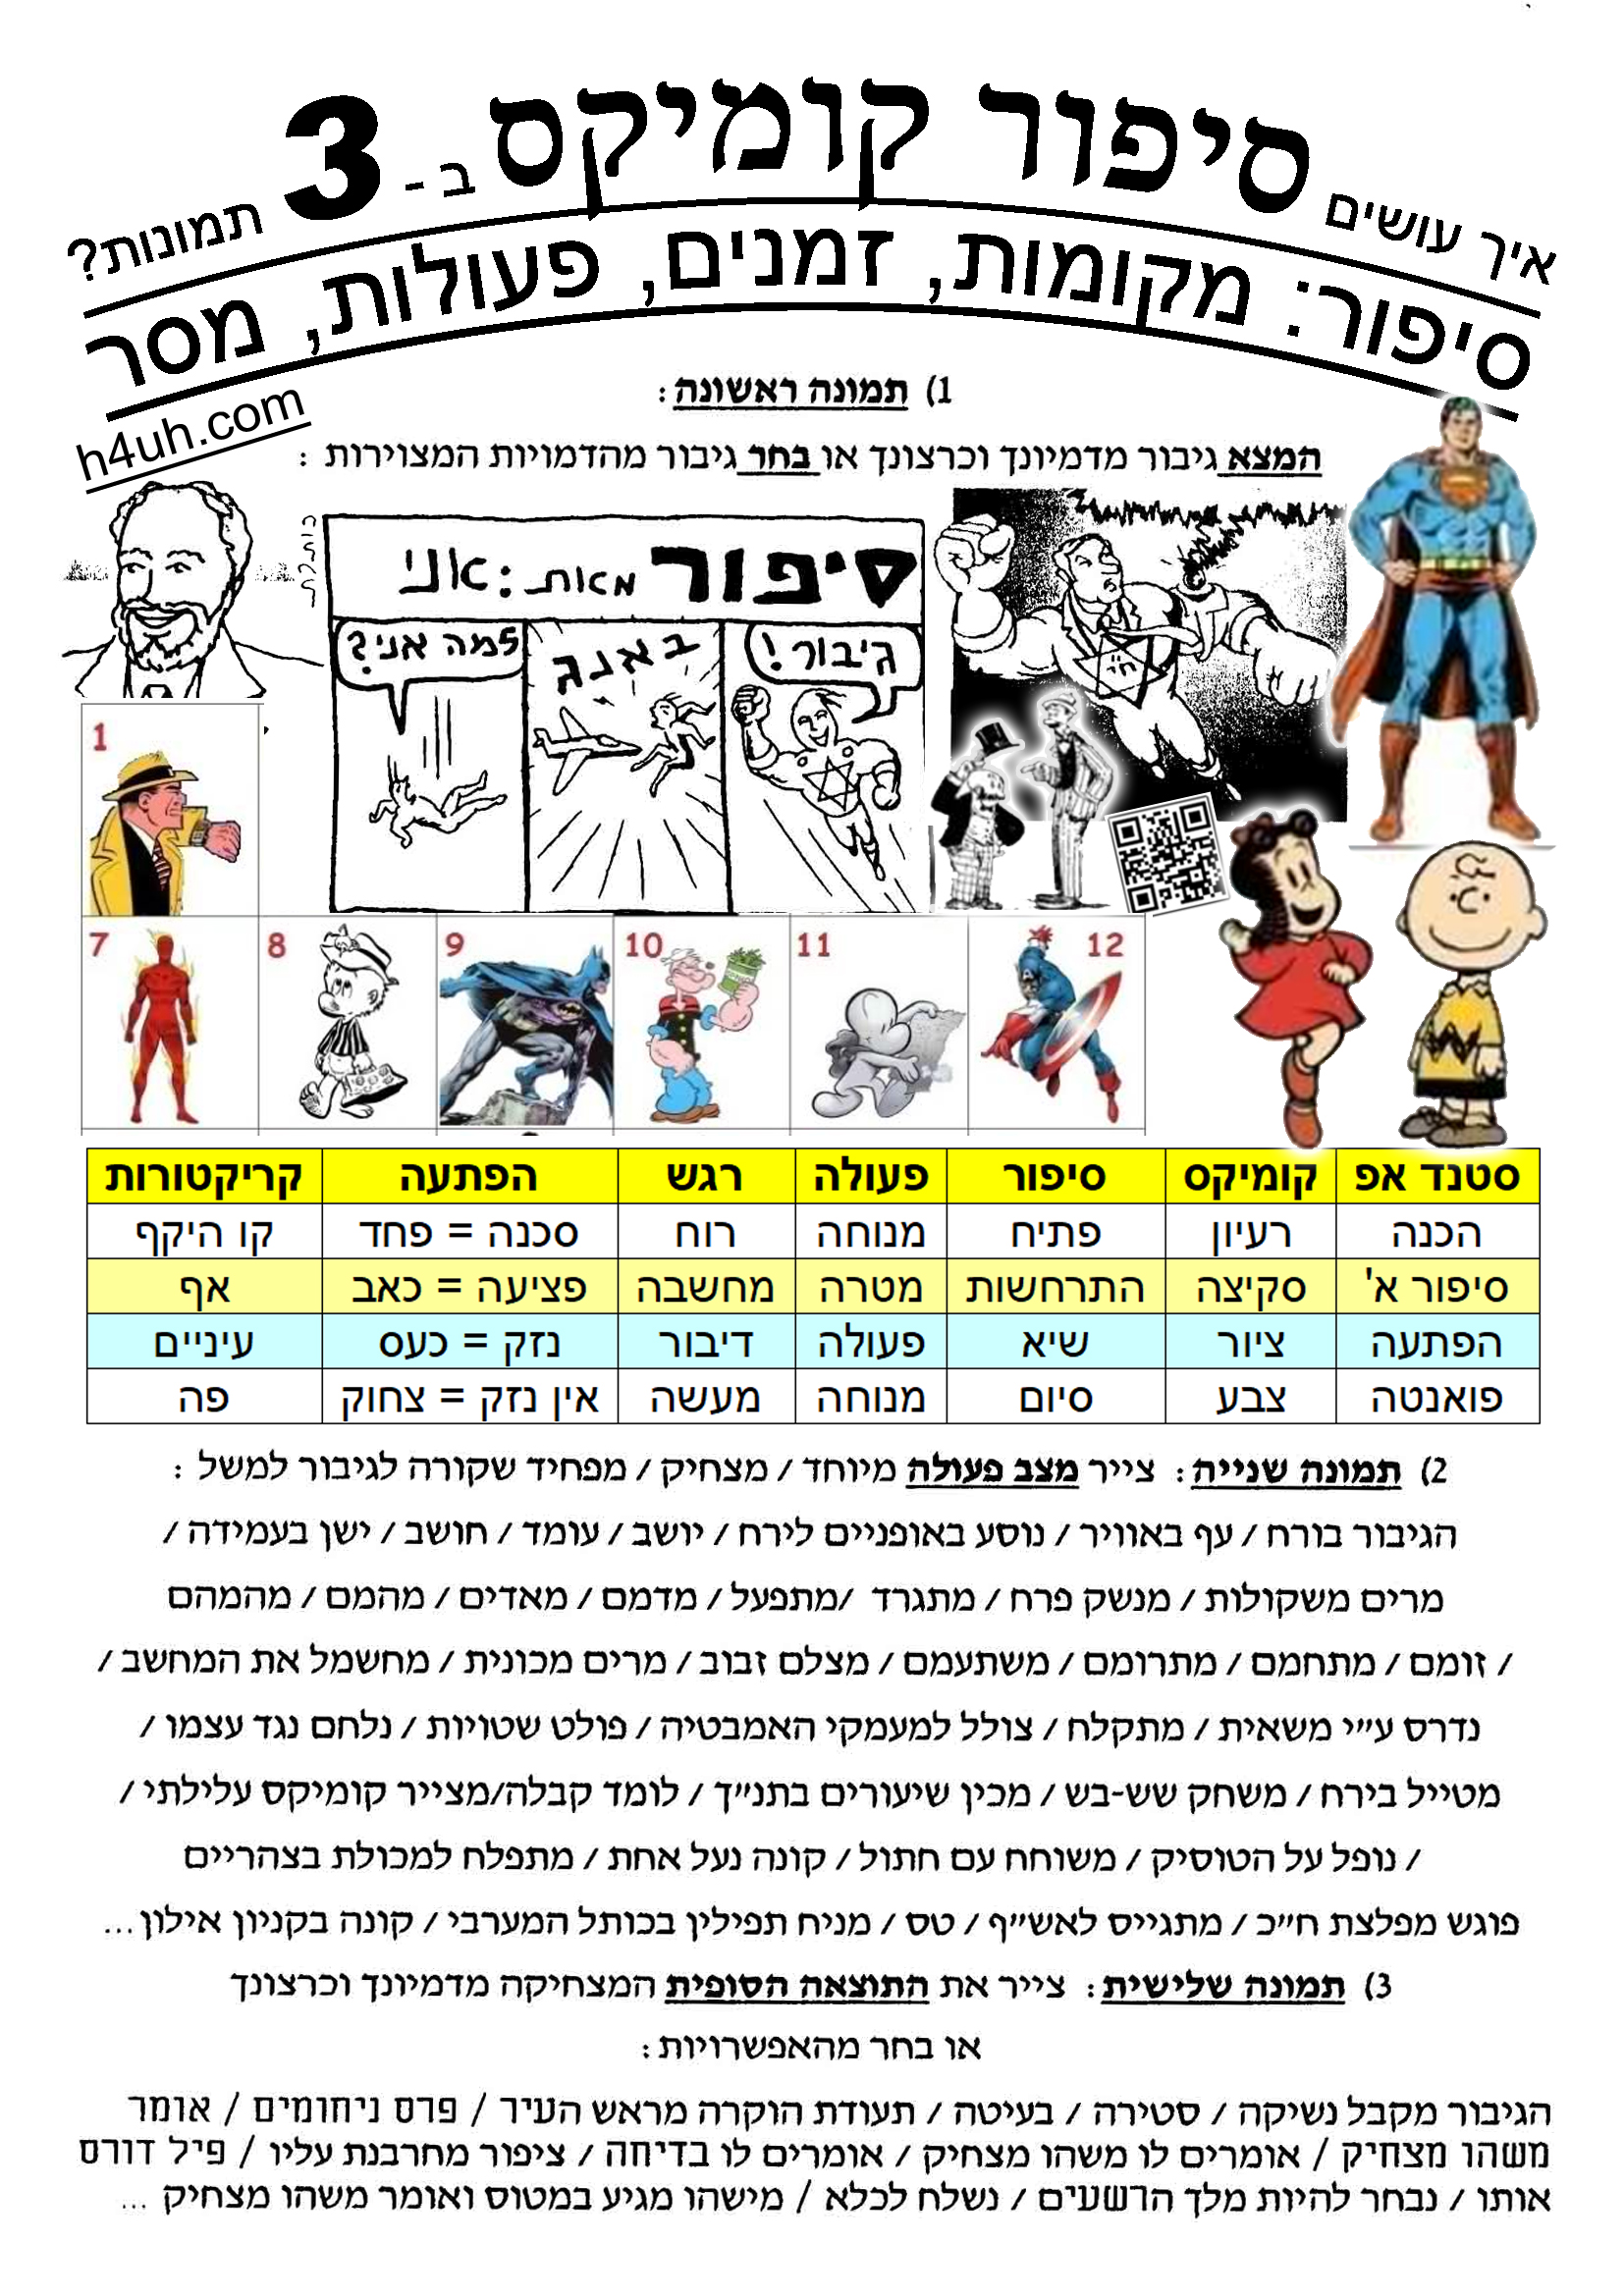 comics,cartoons,strip,schablone,stencil,graphic,novel,pictures-page,creating,קומיקס,קריקטורה,ציור,אמנות,